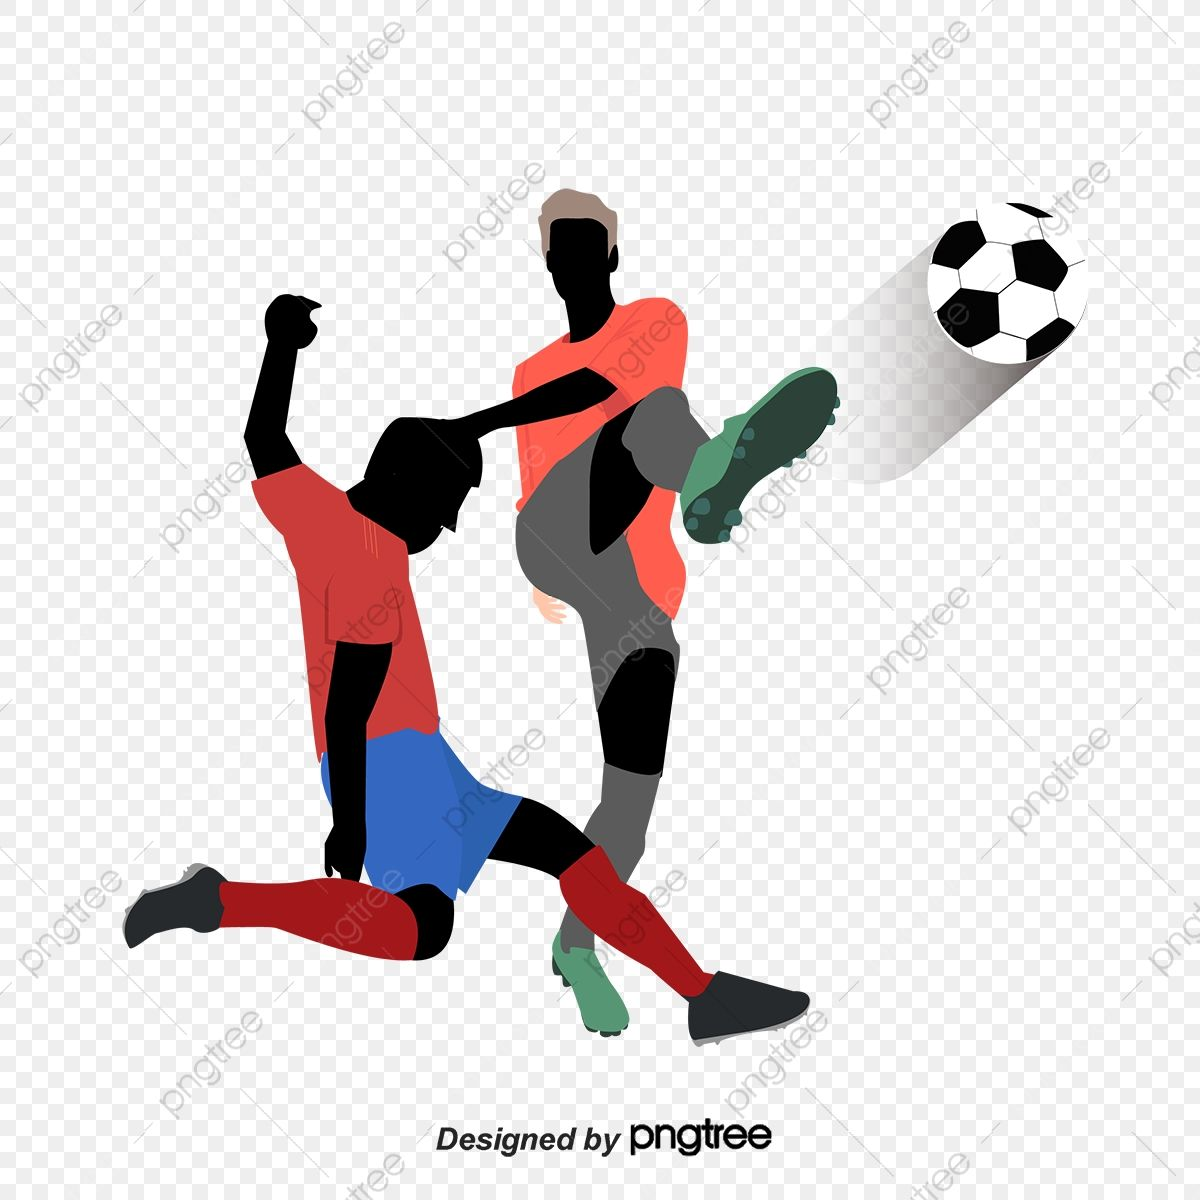 Football Vector Playing Football Clipart Play Football Png And Vector With Transparent Background For Free Download Football Playing Football Soccer Backgrounds